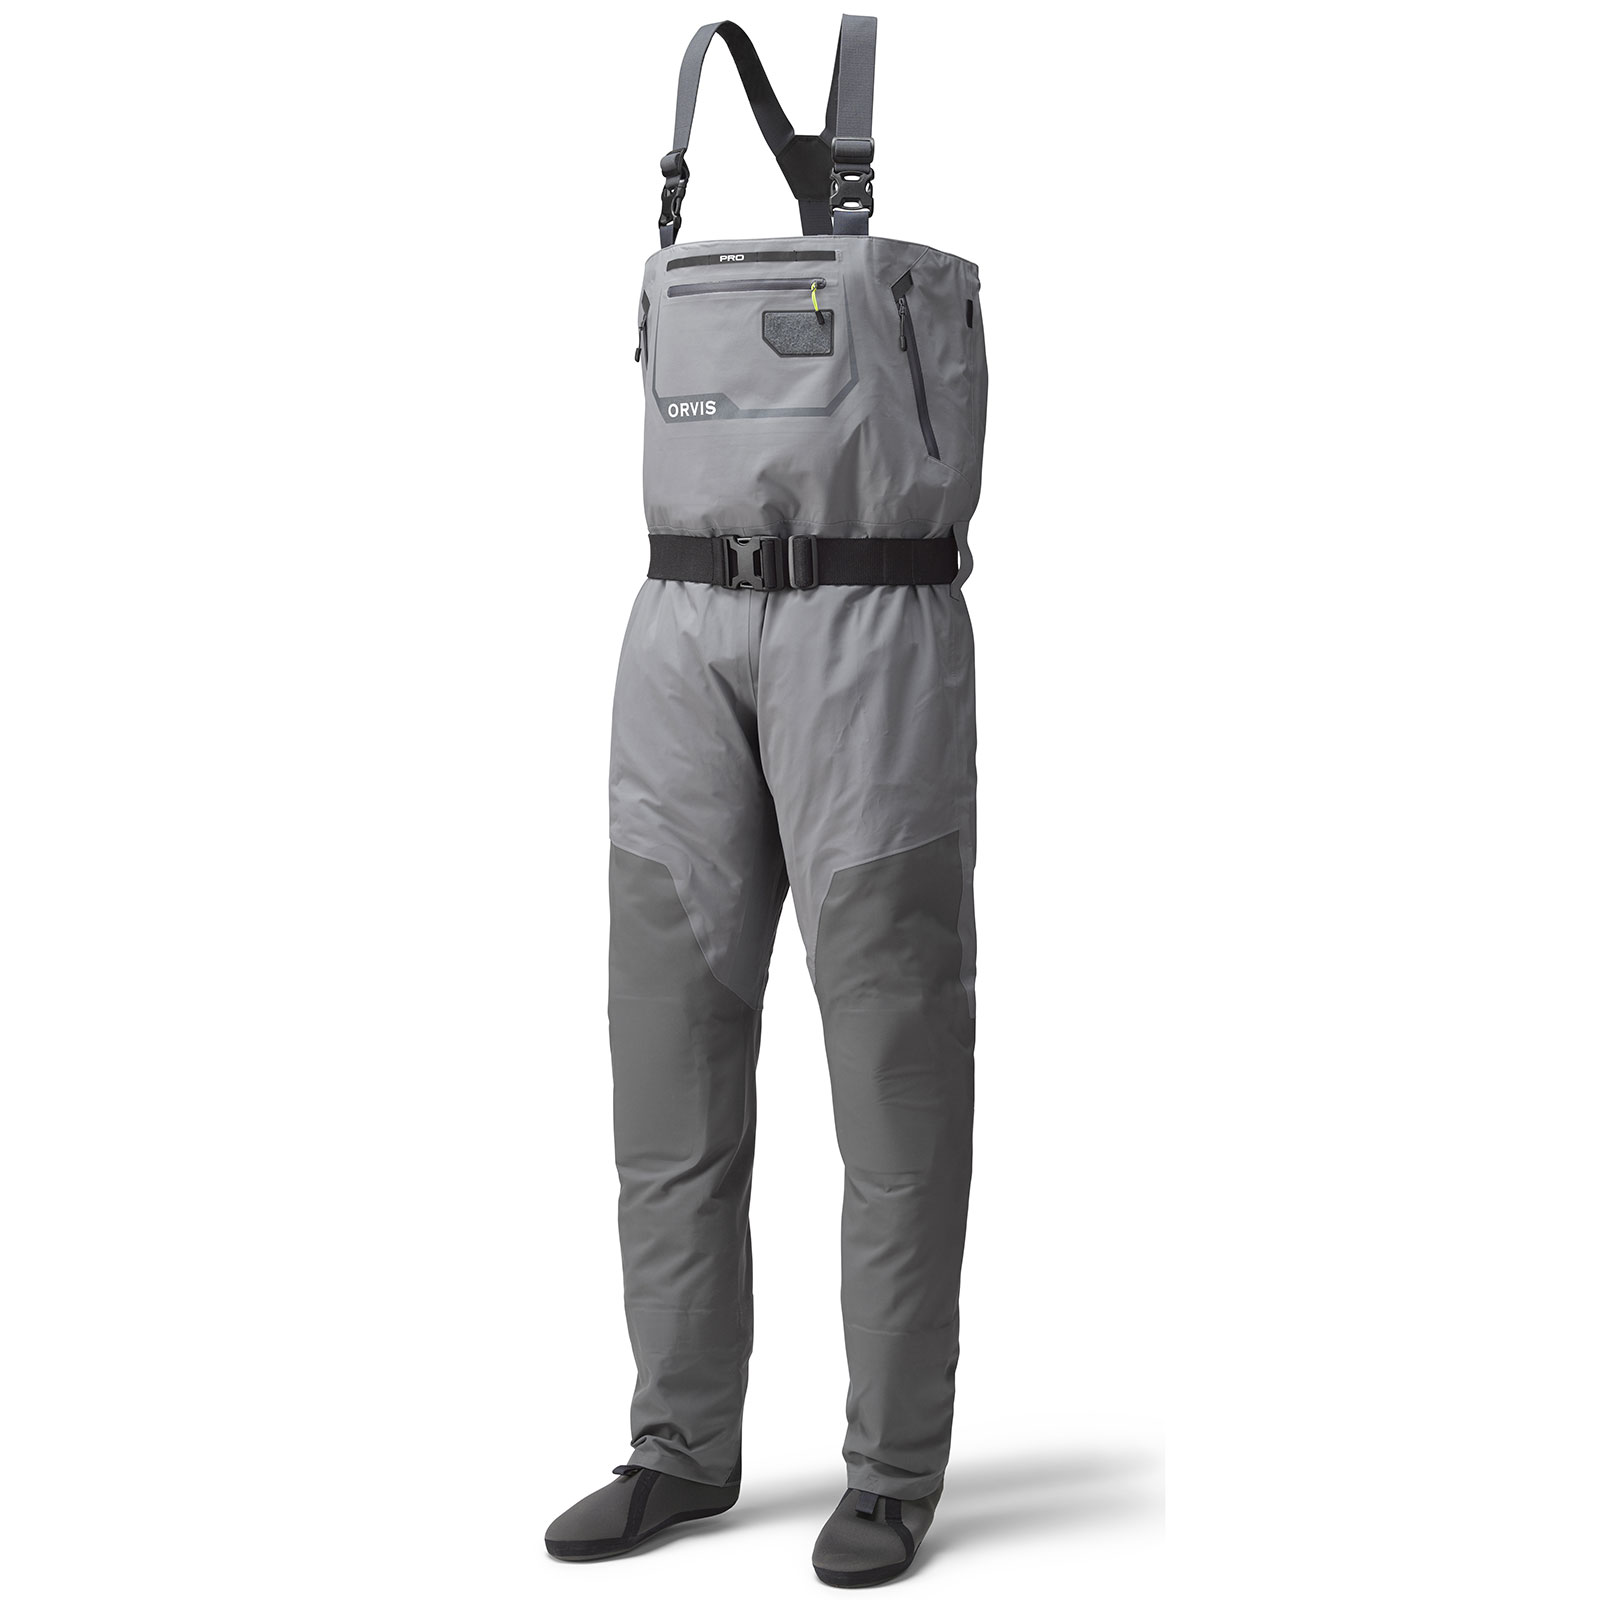 Orvis Men's PRO Stockingfoot Chest Waders